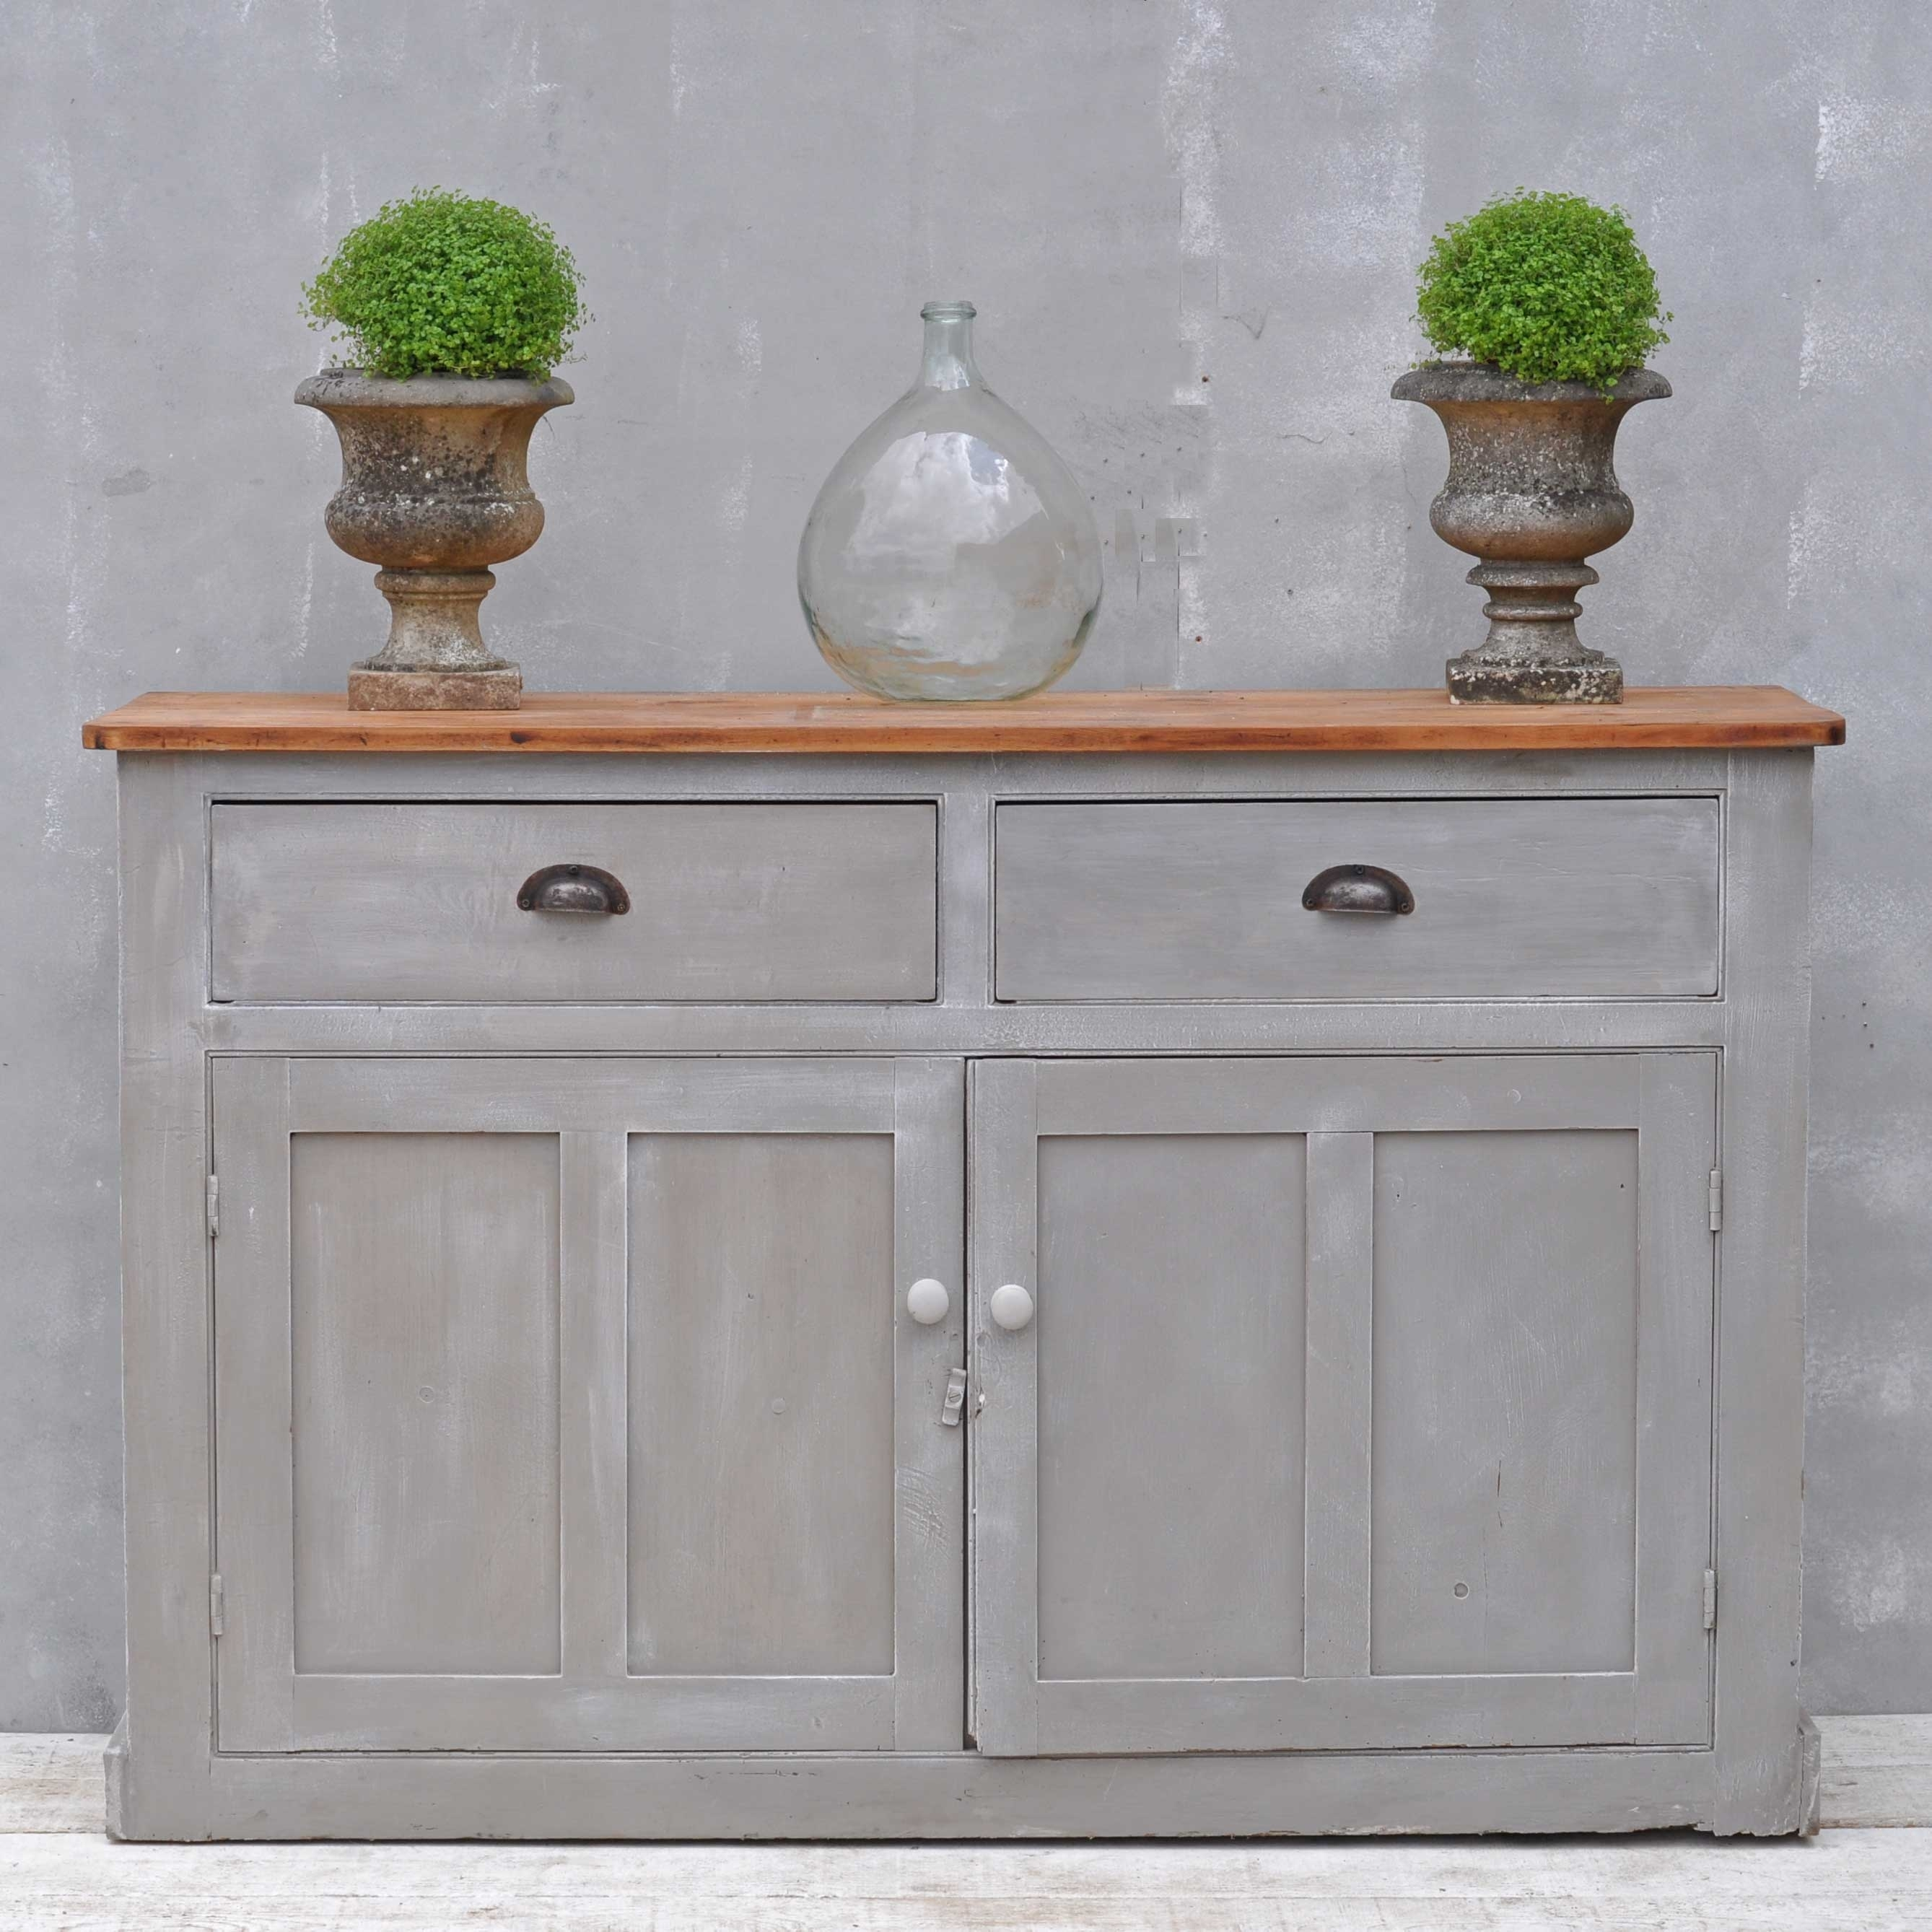 Vintage Sideboard - Hand Painted Victorian Cupboard - Home Barn Vintage intended for Vintage Brown Textured Sideboards (Image 23 of 30)